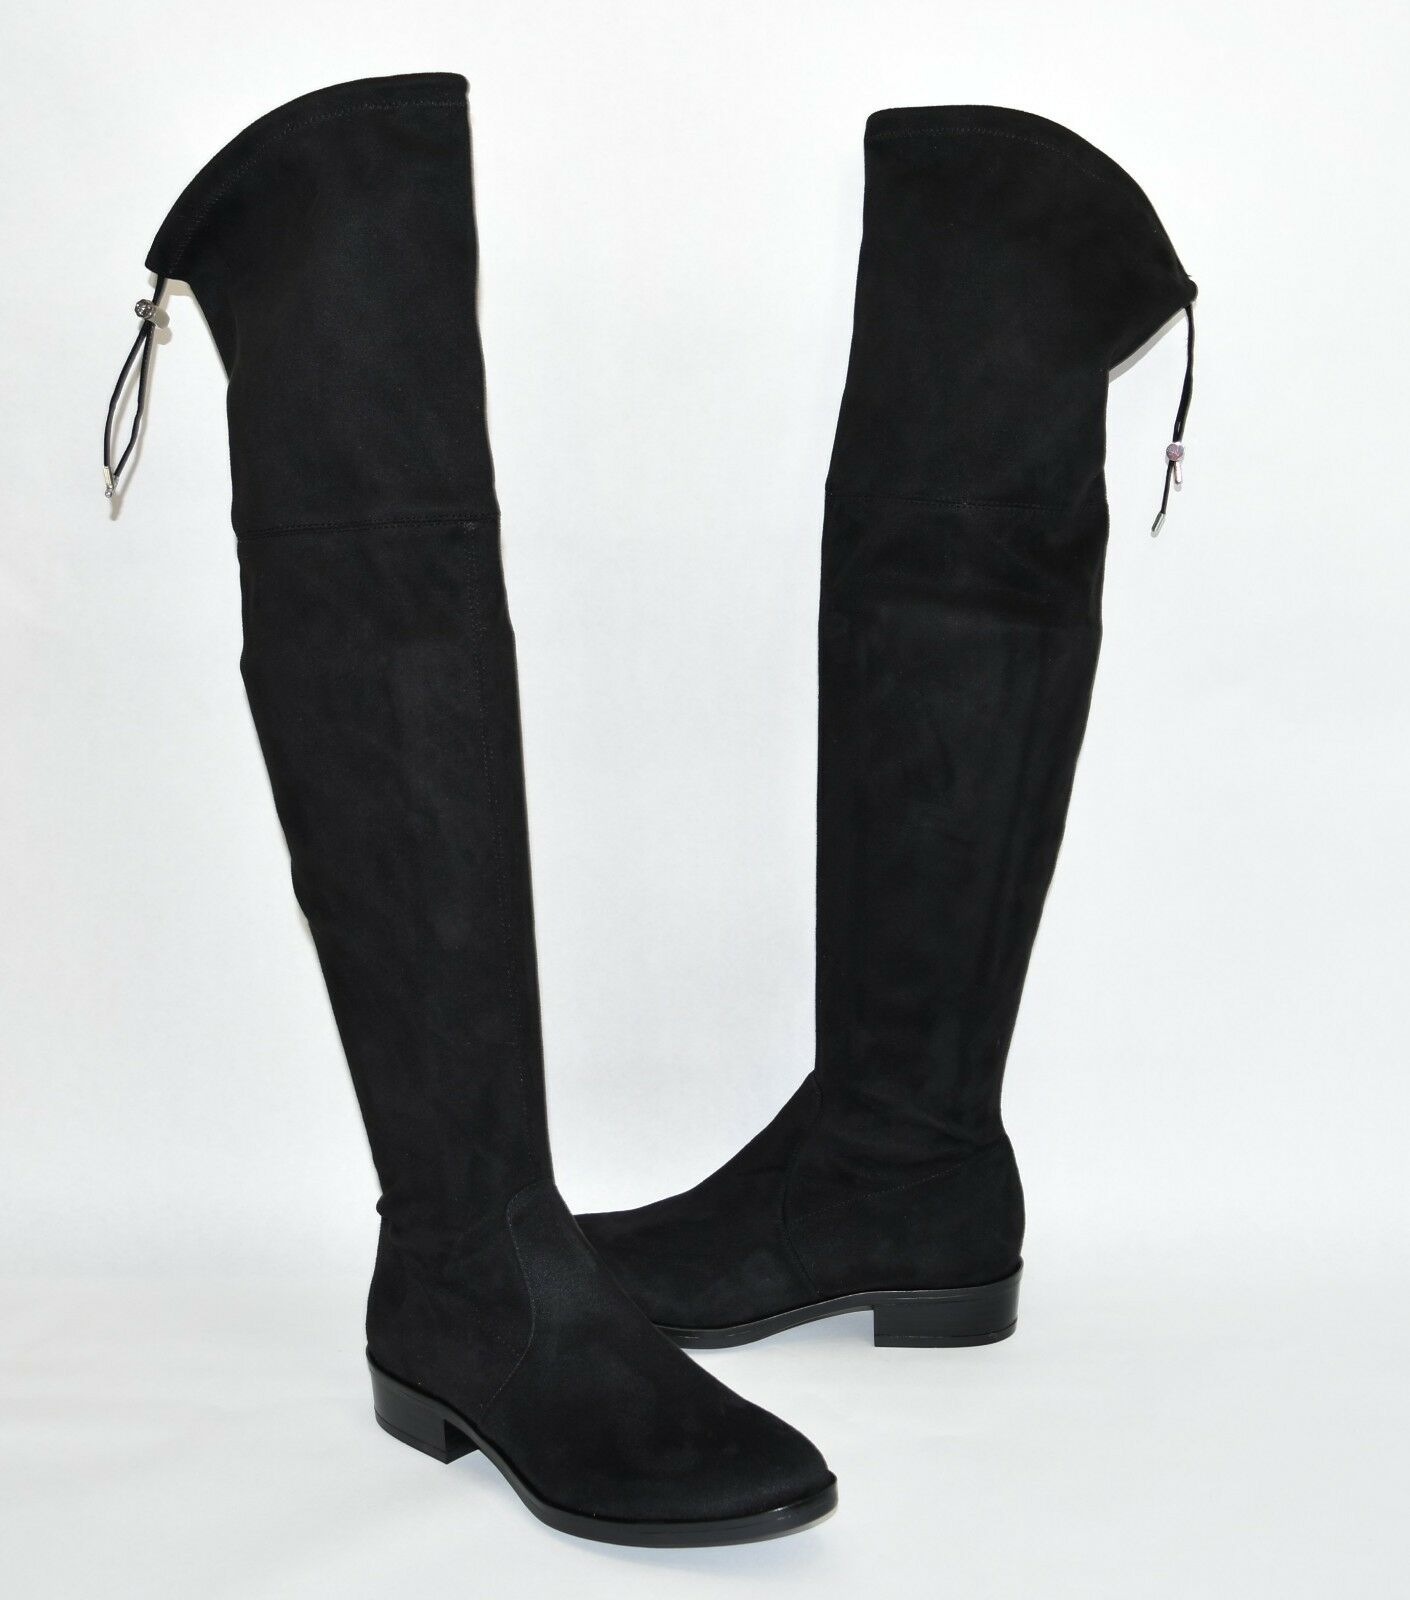 New New New  Sam Edelman Paloma Over the Knee Boot Black Suede Size 6 283f4c